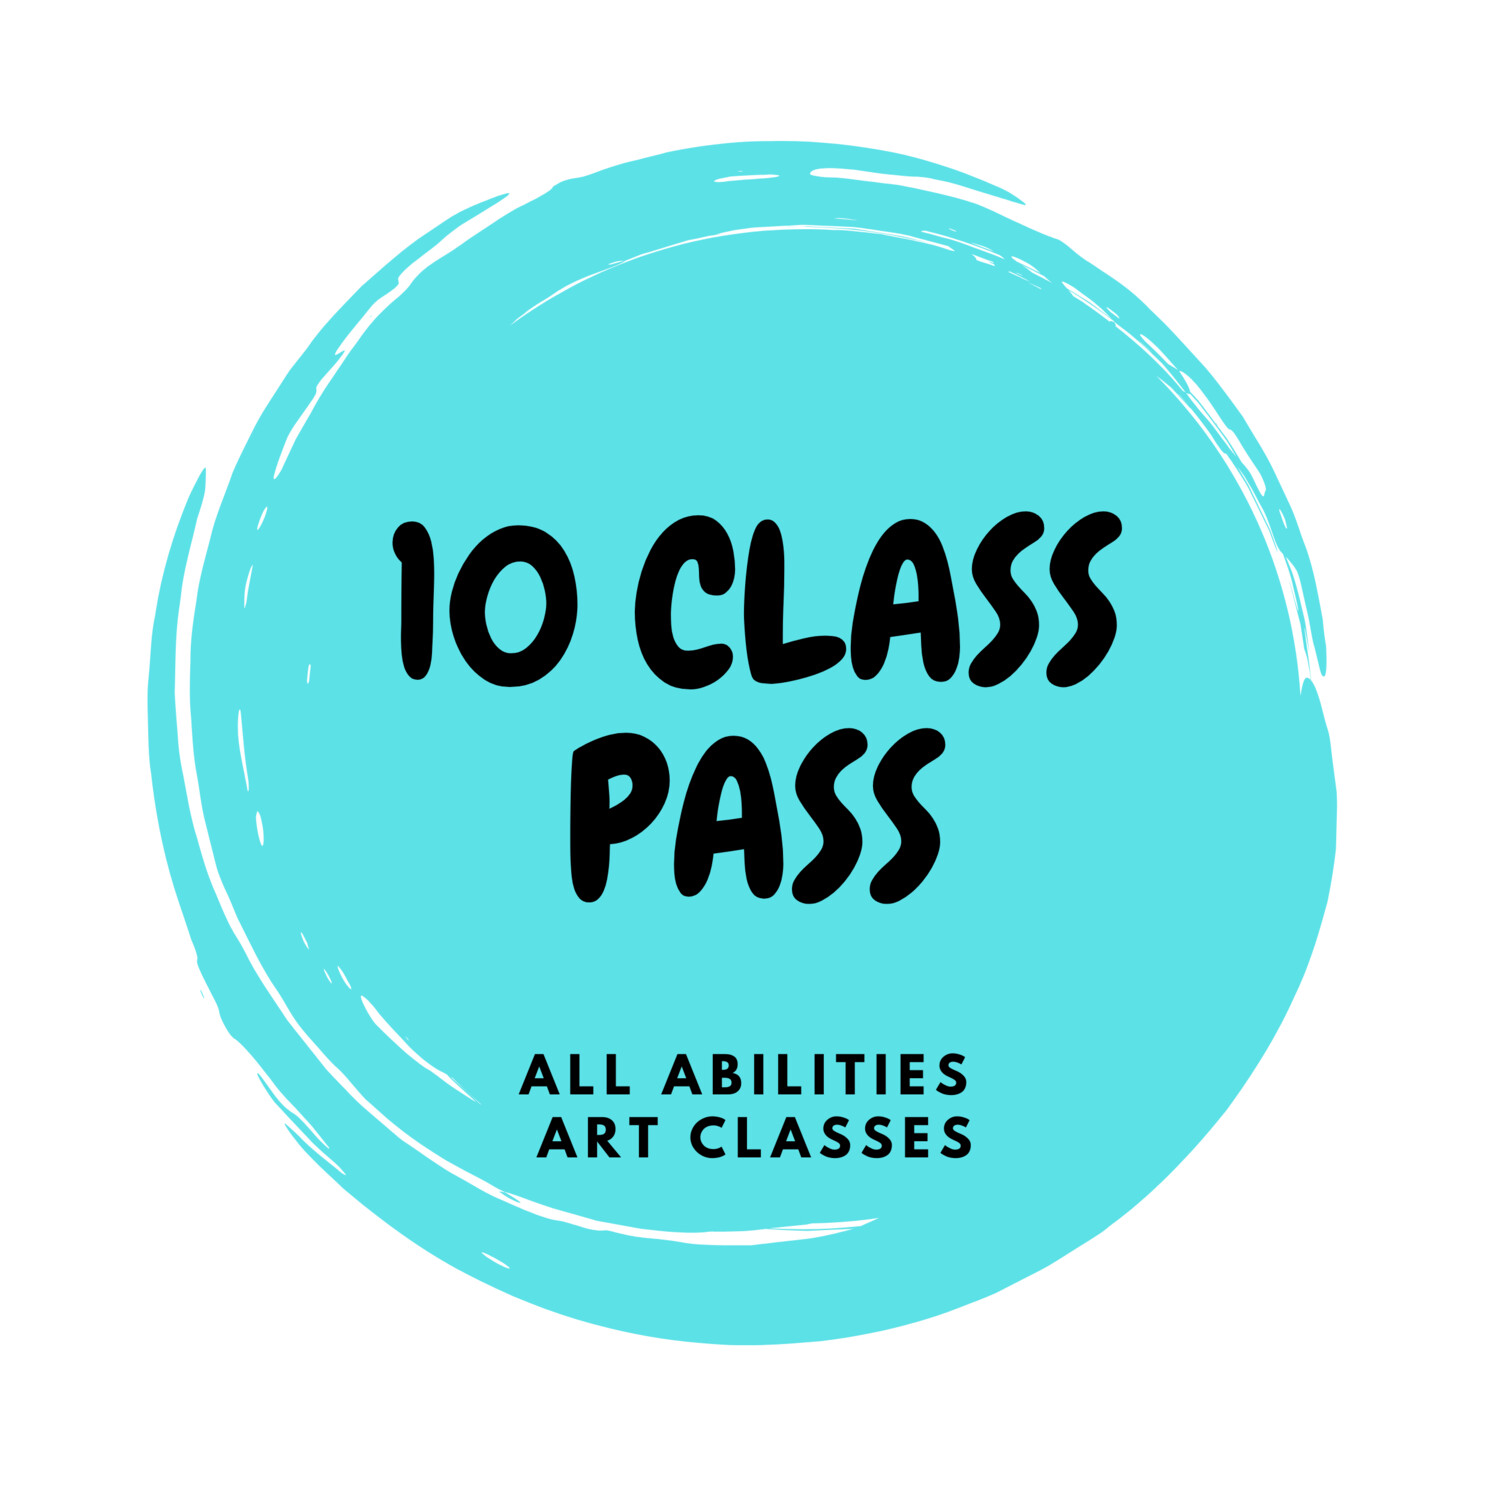 All Abilities Art Classes - 10 class pass